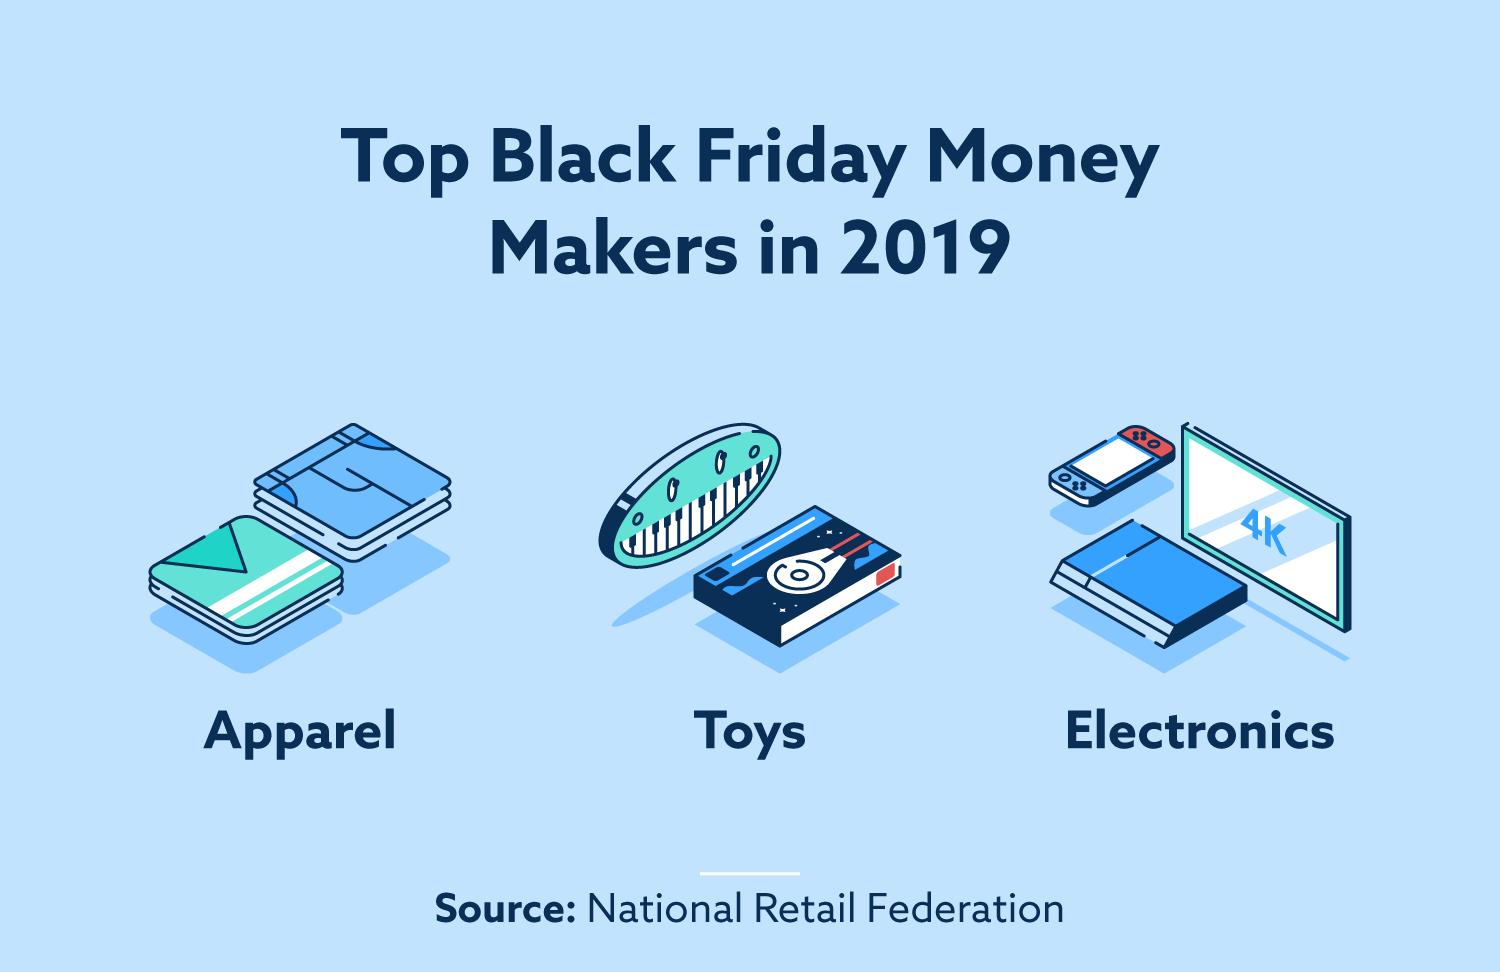 Top Black Friday Money Makers in 2019: Apparel, Toys, Electronics.